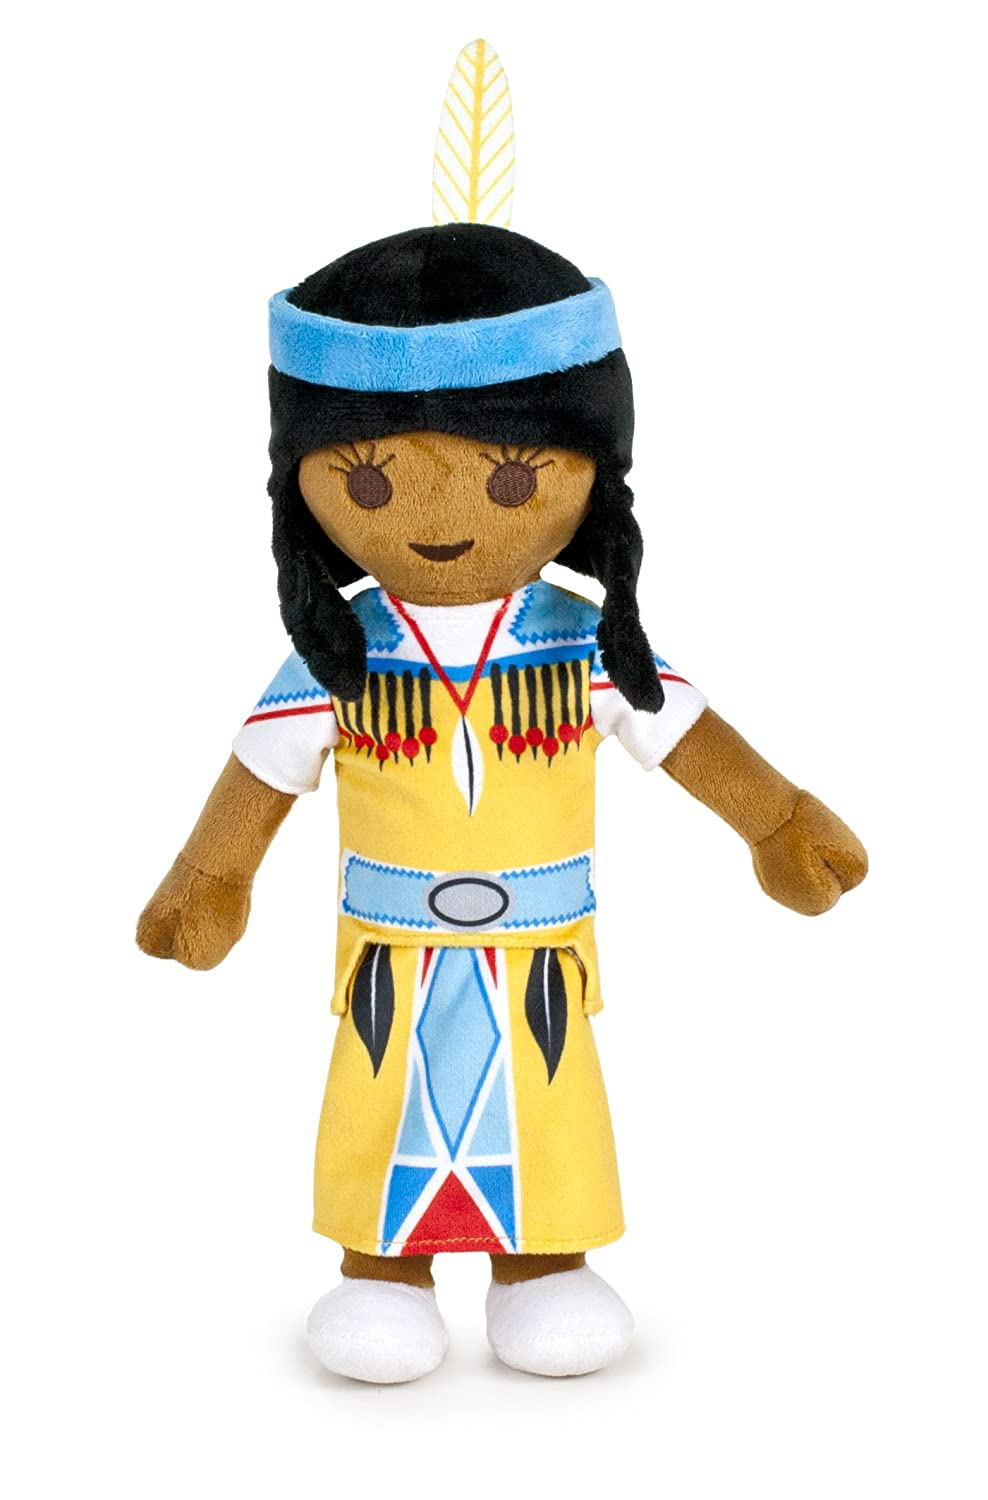 PLAYMOBIL - Peluche India - Serie 2 - 30 Cm playbyplay